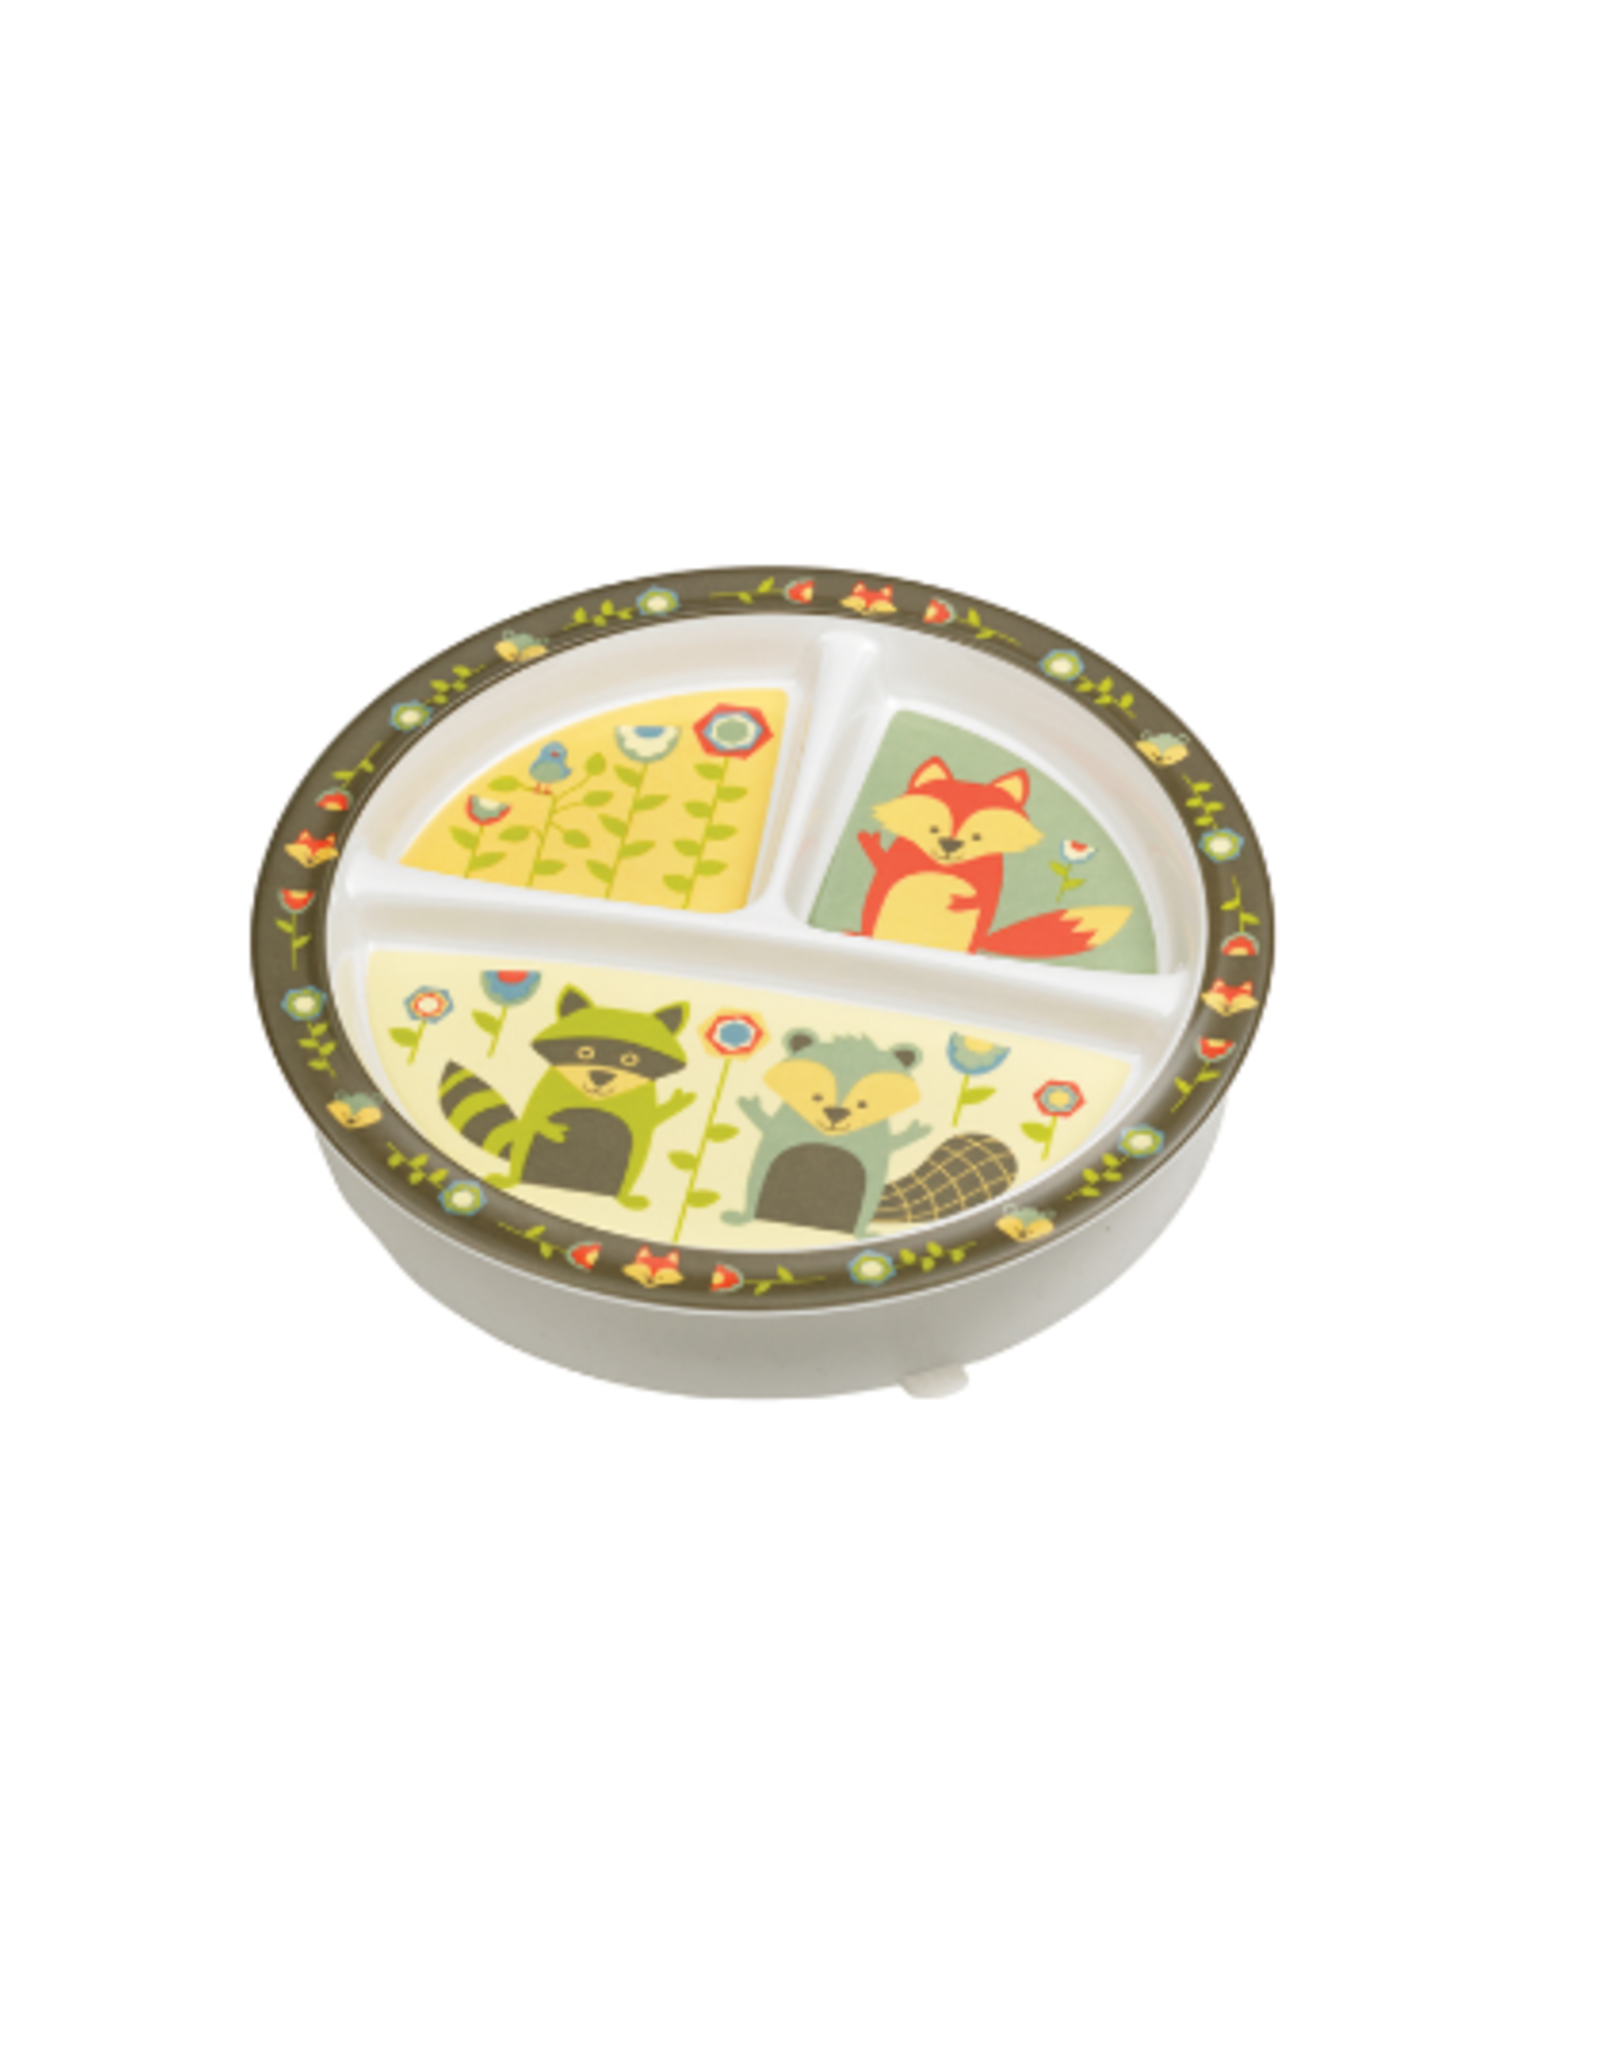 ORE Originals Divided Suction Plate, What did the Fox Eat?